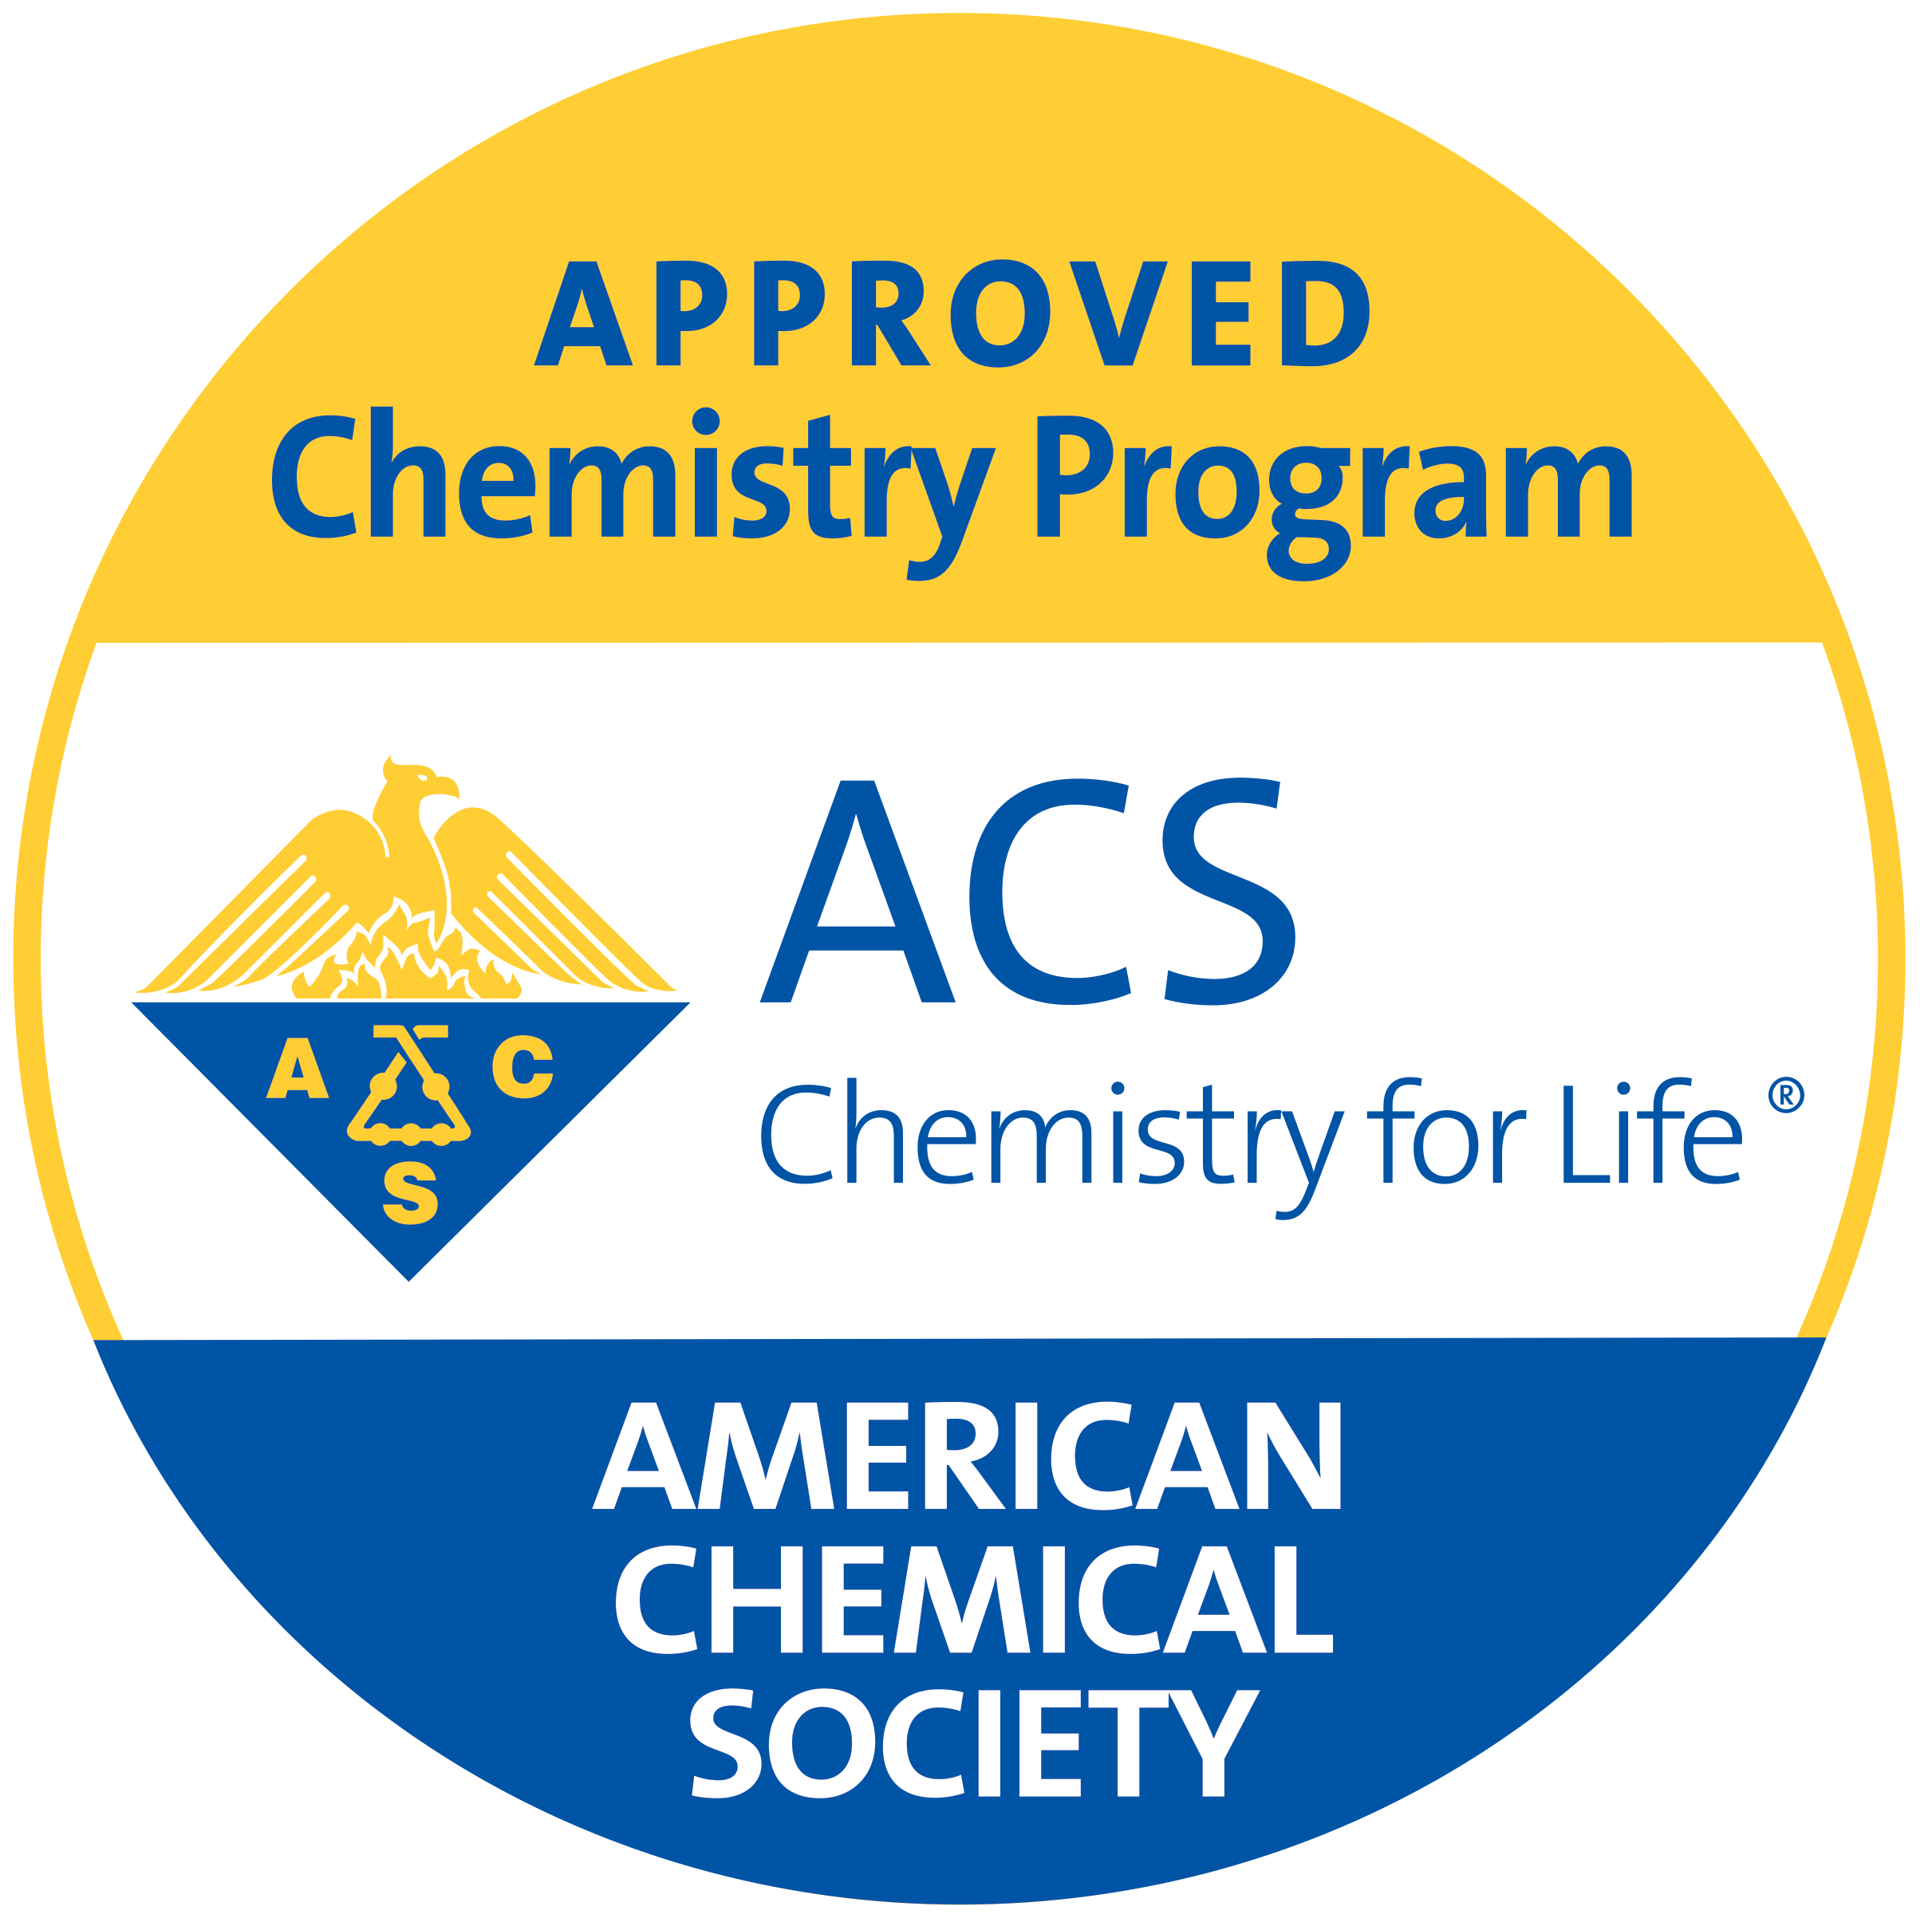 ACS Approved Chemistry Program